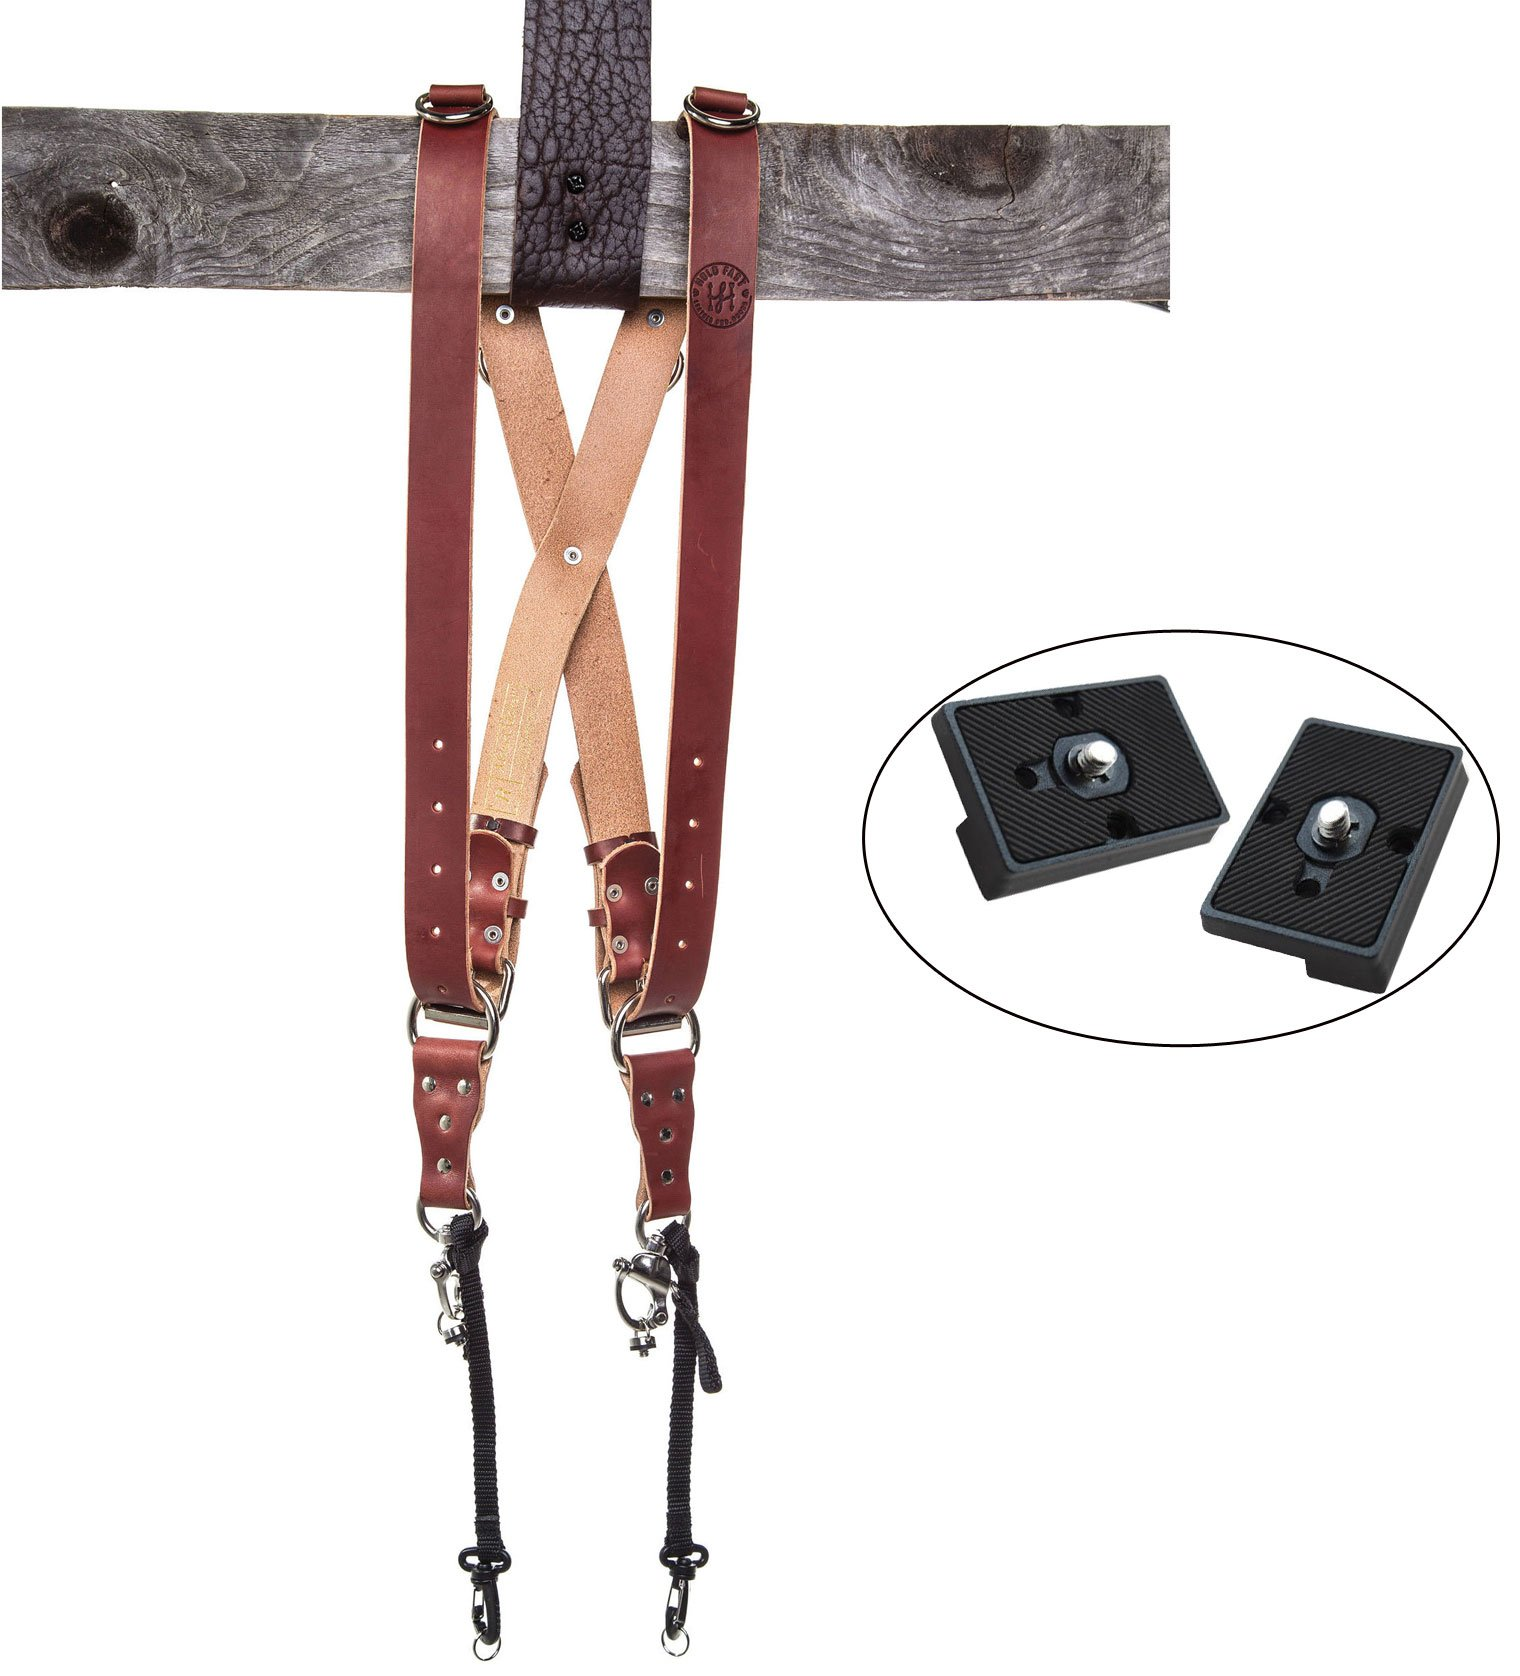 Holdfast Gear Money Maker Multi-Camera Harness, Bridle Leather Chestnut (Medium) and Two Ivation Replacement Plates For The Manfrotto RC2 Rapid Connect Adapter